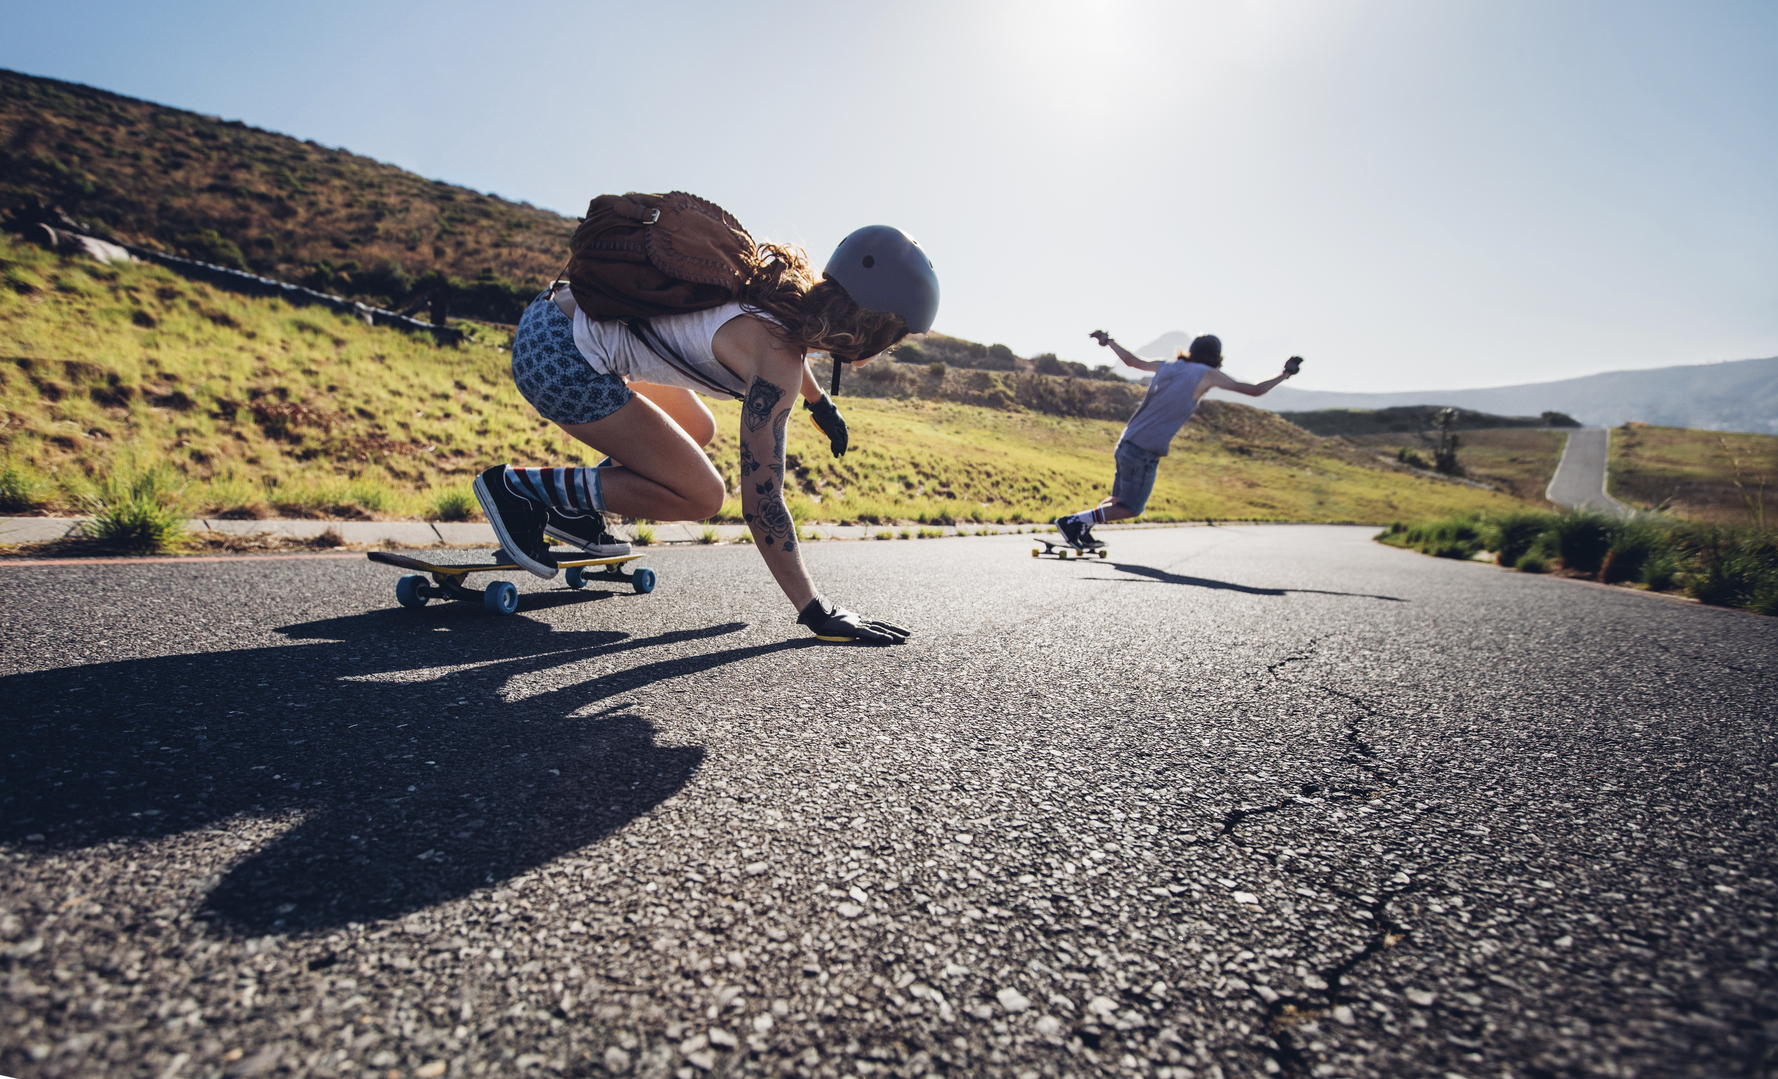 Young people skateboarding outdoors on the road